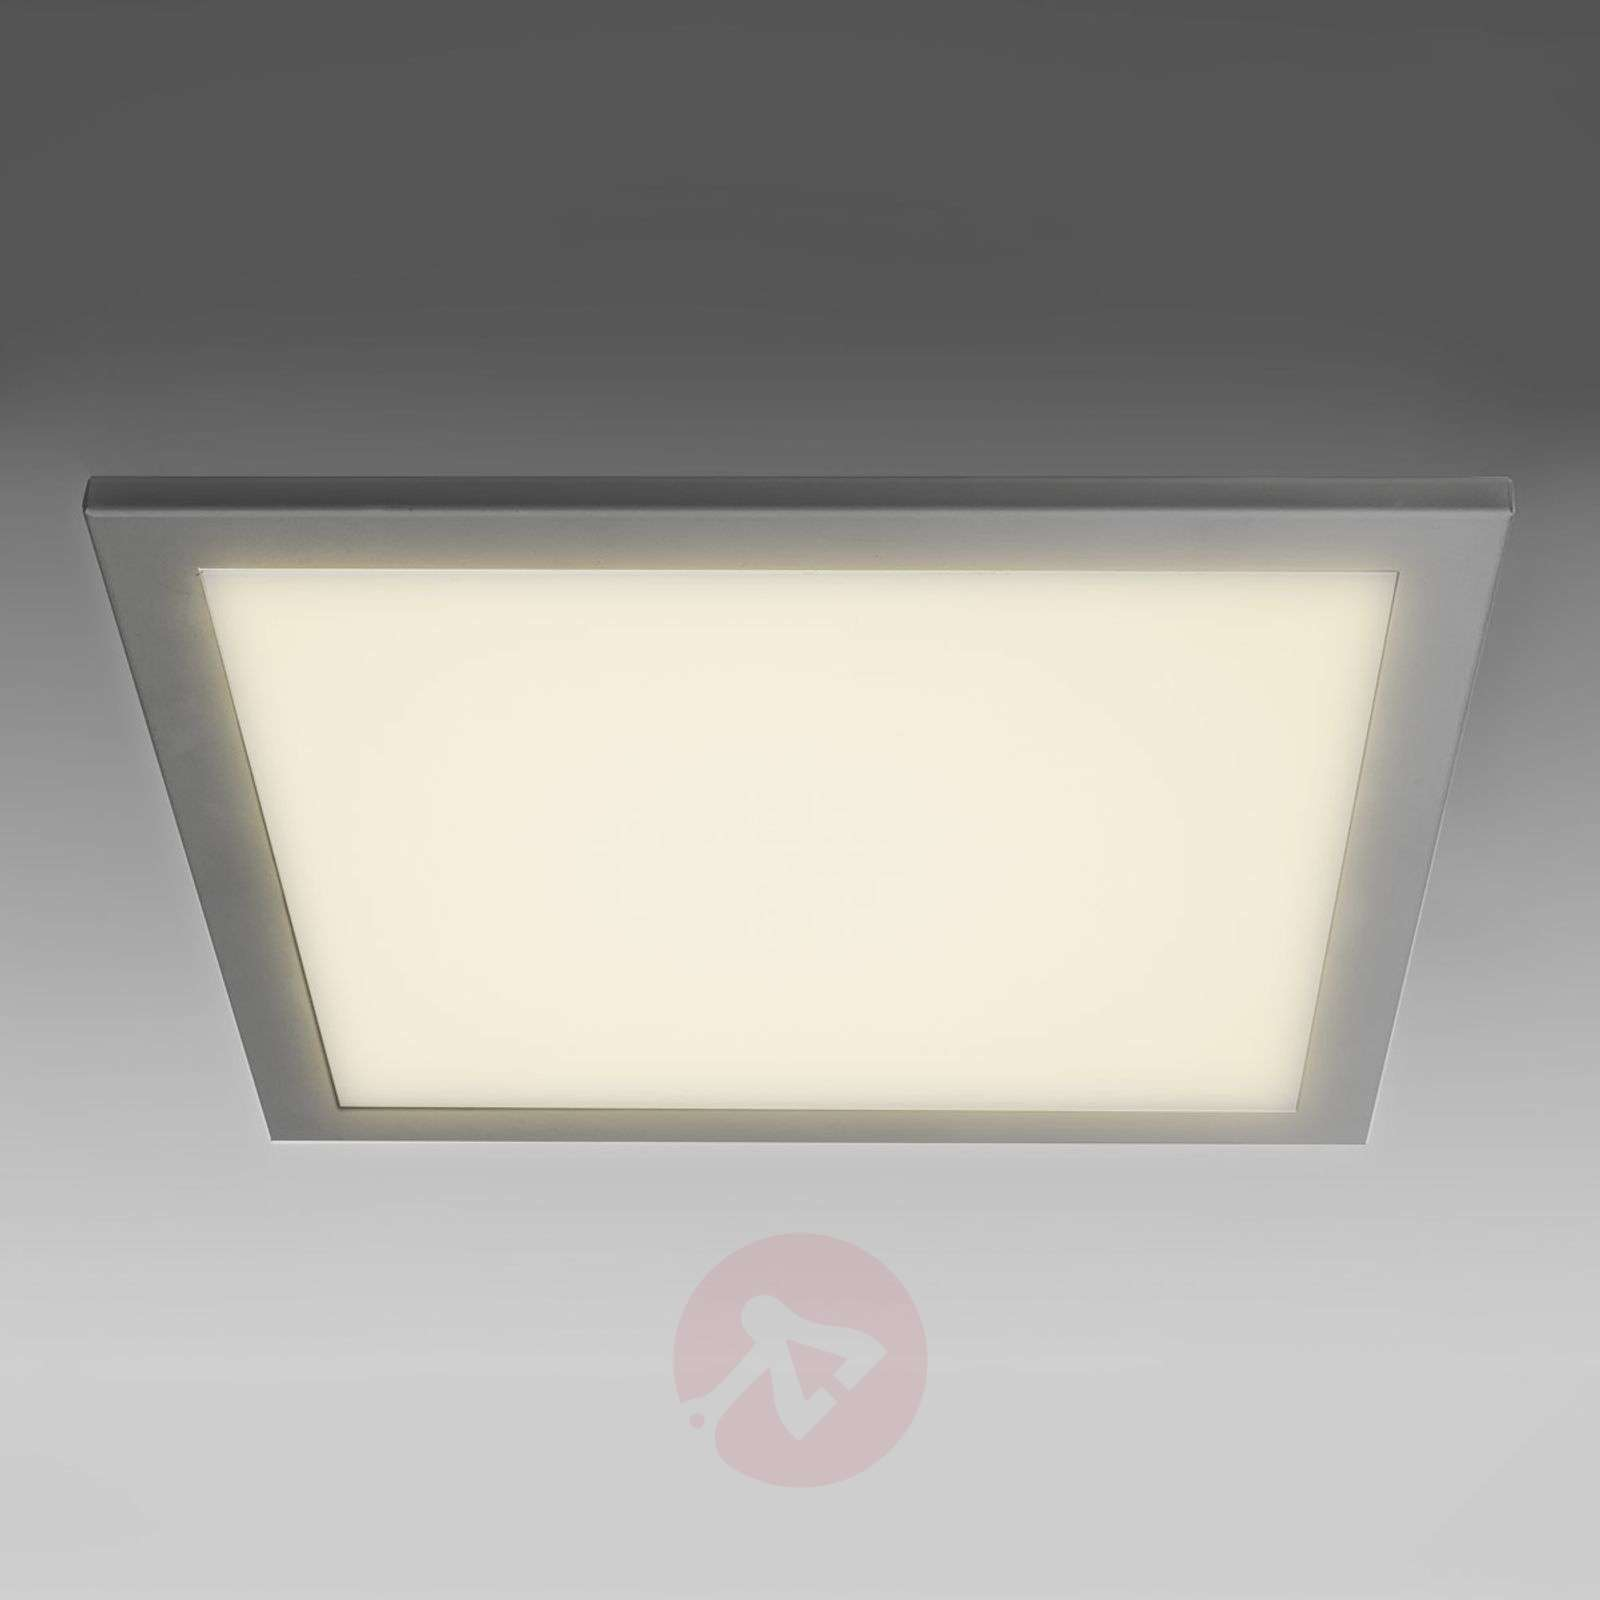 Plafonnier encastrable LED SUN 9, ultra-plat-1018227X-01